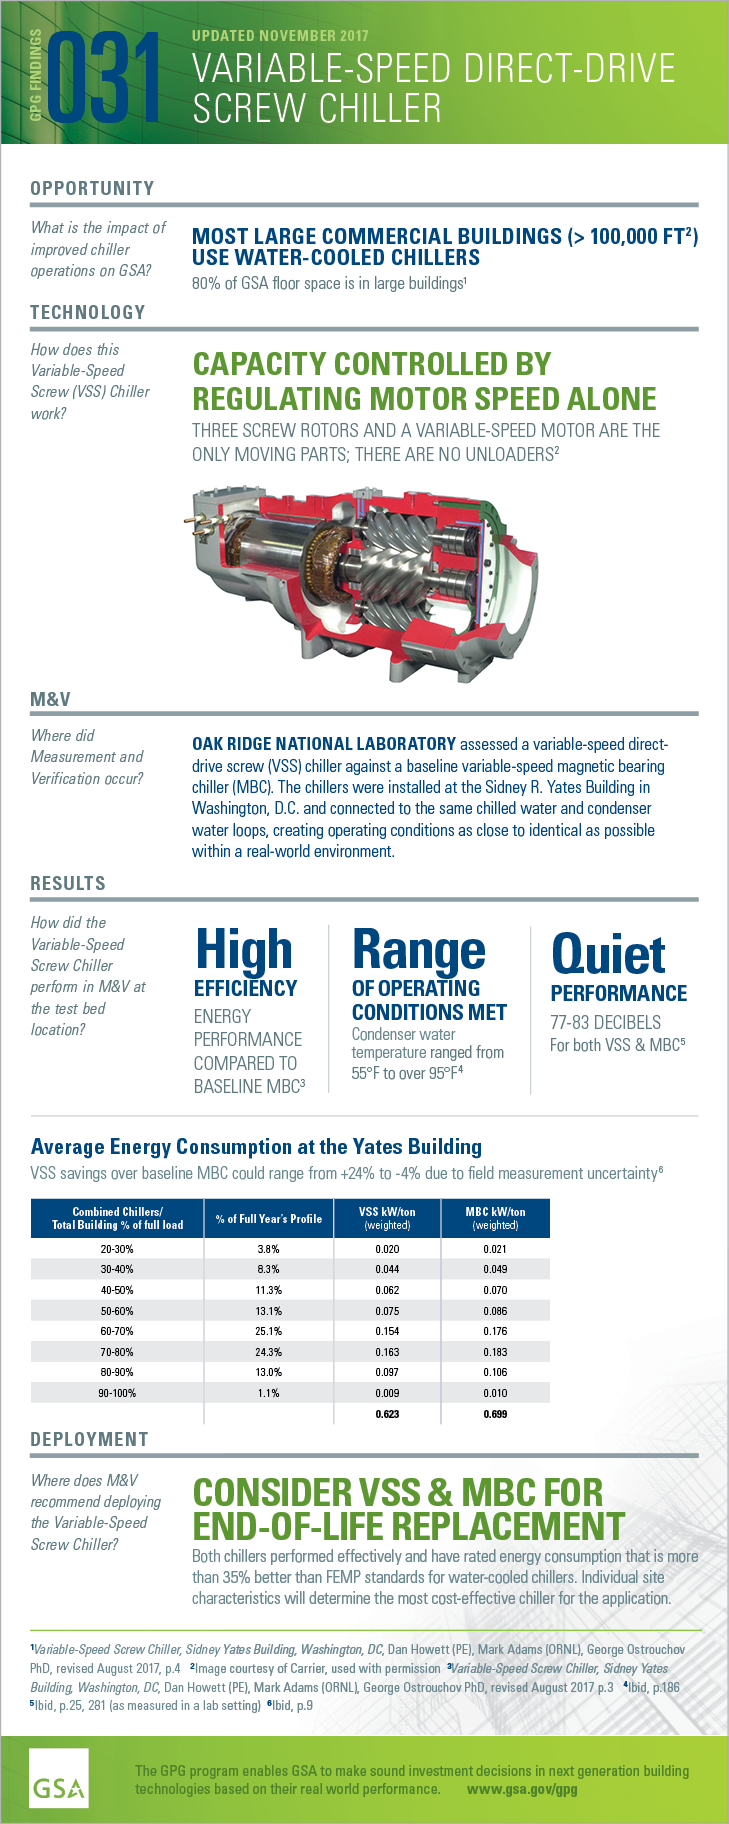 GPG Findings 031, November 2017, Variable-speed direct-drive screw chiller. Opportunity: What is the impact of improved chiller operations on GSA? Most large commercial buildings (> 100,000 ft2) use water-cooled chillers. 80% of GSA floor space is in large buildings. Technology: How does this Variable-Speed Screw (VSS) Chiller work? capacity controlled by regulating motor speed alone. three screw rotors and a variable-speed motor are the only moving parts; there are no unloader.  Measurement and Verification: Where did M and V occur? oak ridge NATIONAL LABORATORY assessed a variable-speed direct-drive screw (VSS) chiller against a baseline variable-speed magnetic bearing chiller (MBC). The chillers were installed at the Sidney R. Yates Building in Washington, D.C. and connected to the same chilled water and condenser water loops, creating operating conditions as close to identical as possible within a real-world environment. Results: How did the Variable-Speed Screw Chiller perform in M&V at the test bed location? High